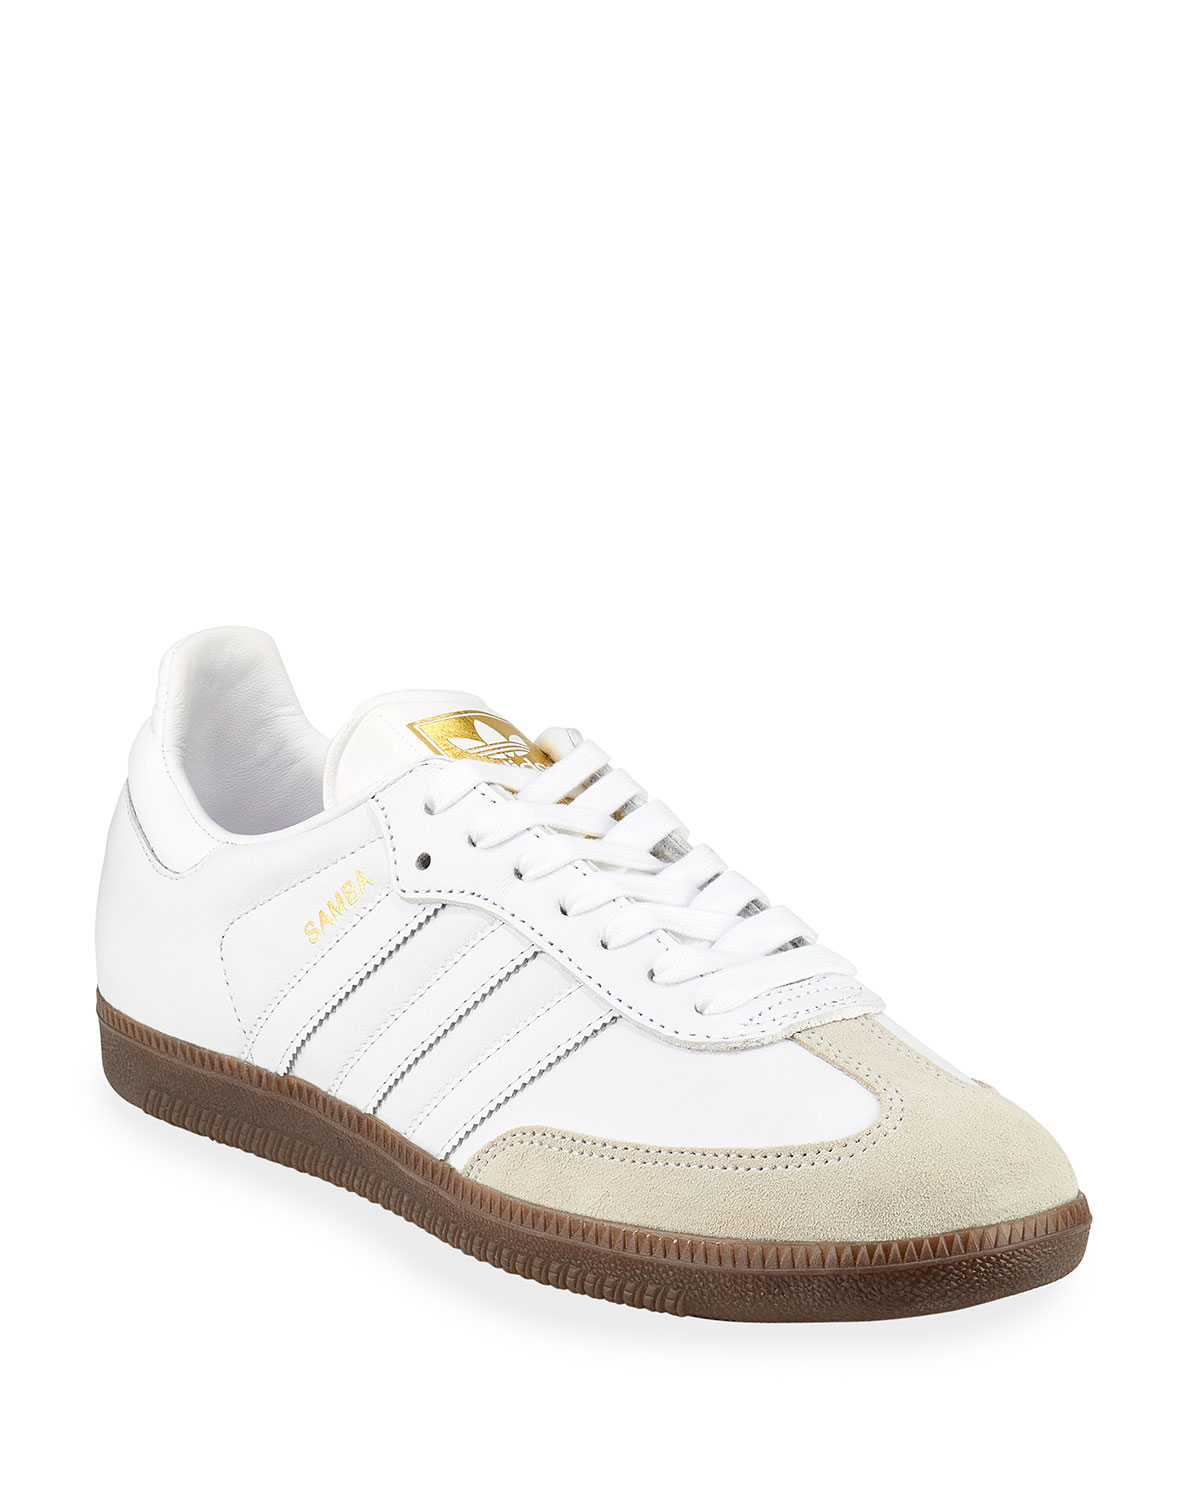 83ffcb203 ... promo code for adidassamba classic leather sneakers white 9af2d 7a72e